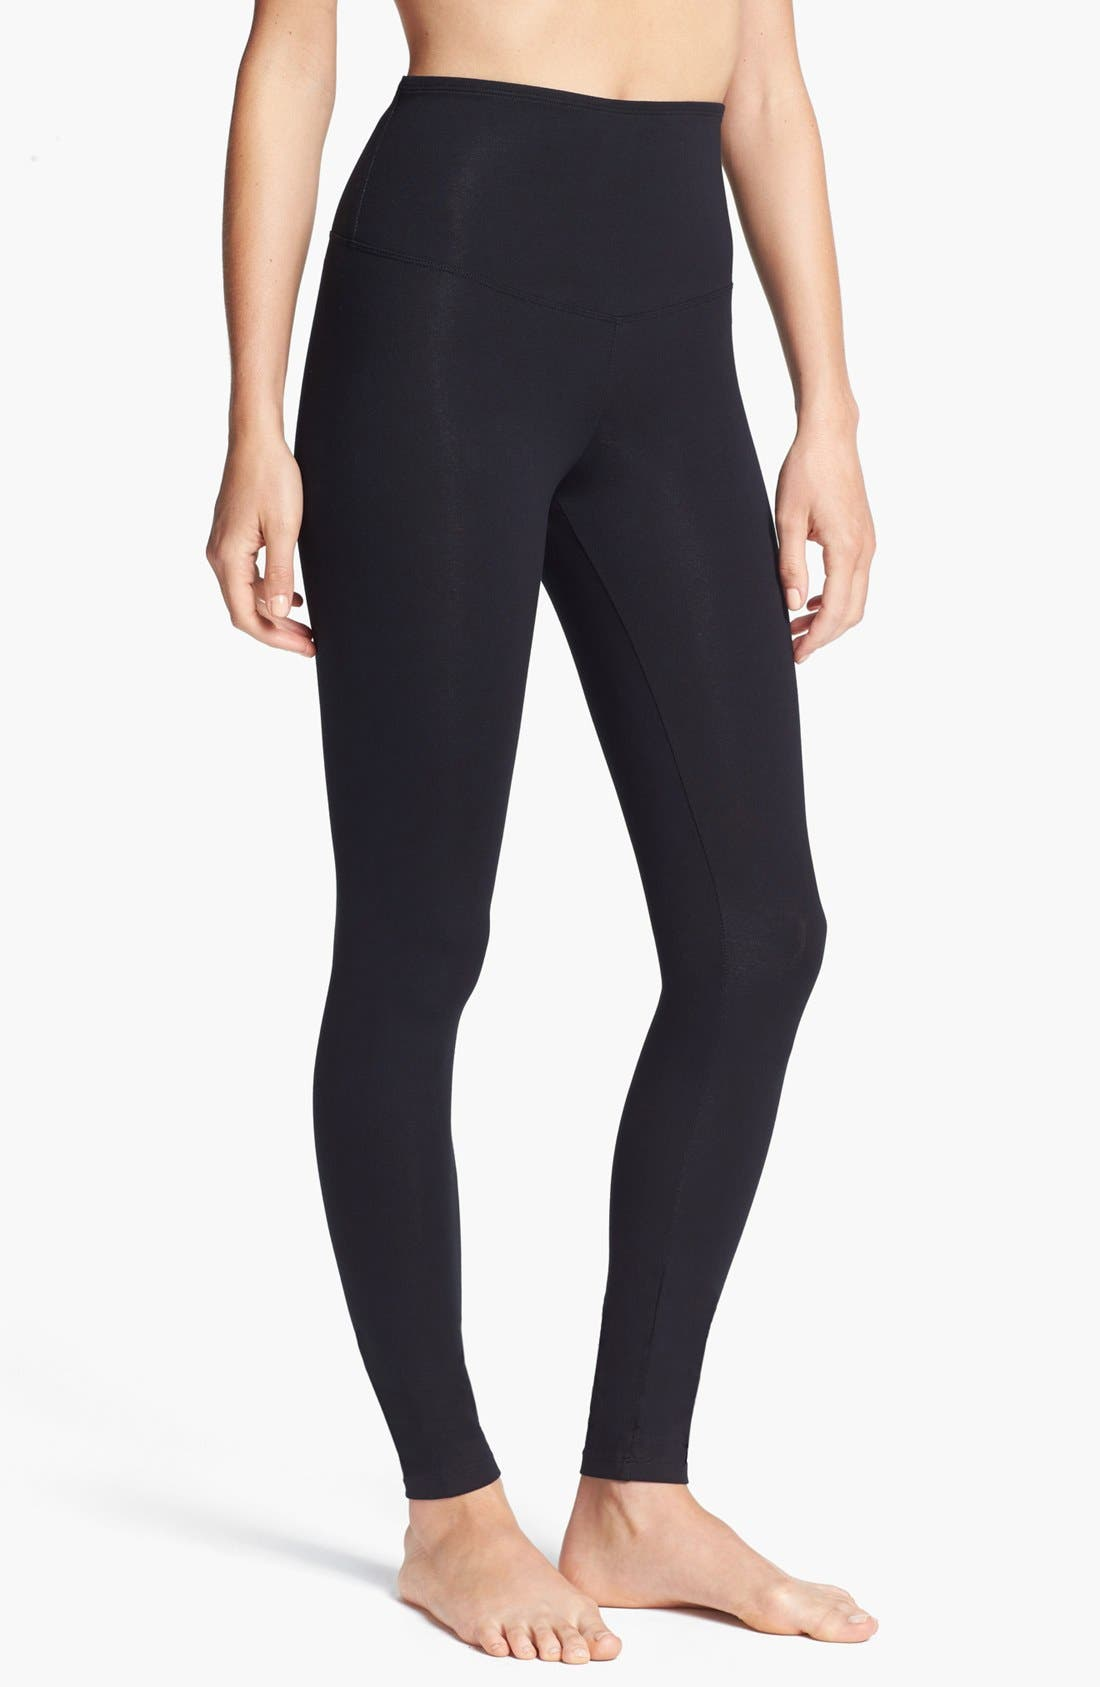 Main Image - Yummie by Heather Thomson 'Rachel' High Waist Leggings (Regular & Plus Size)